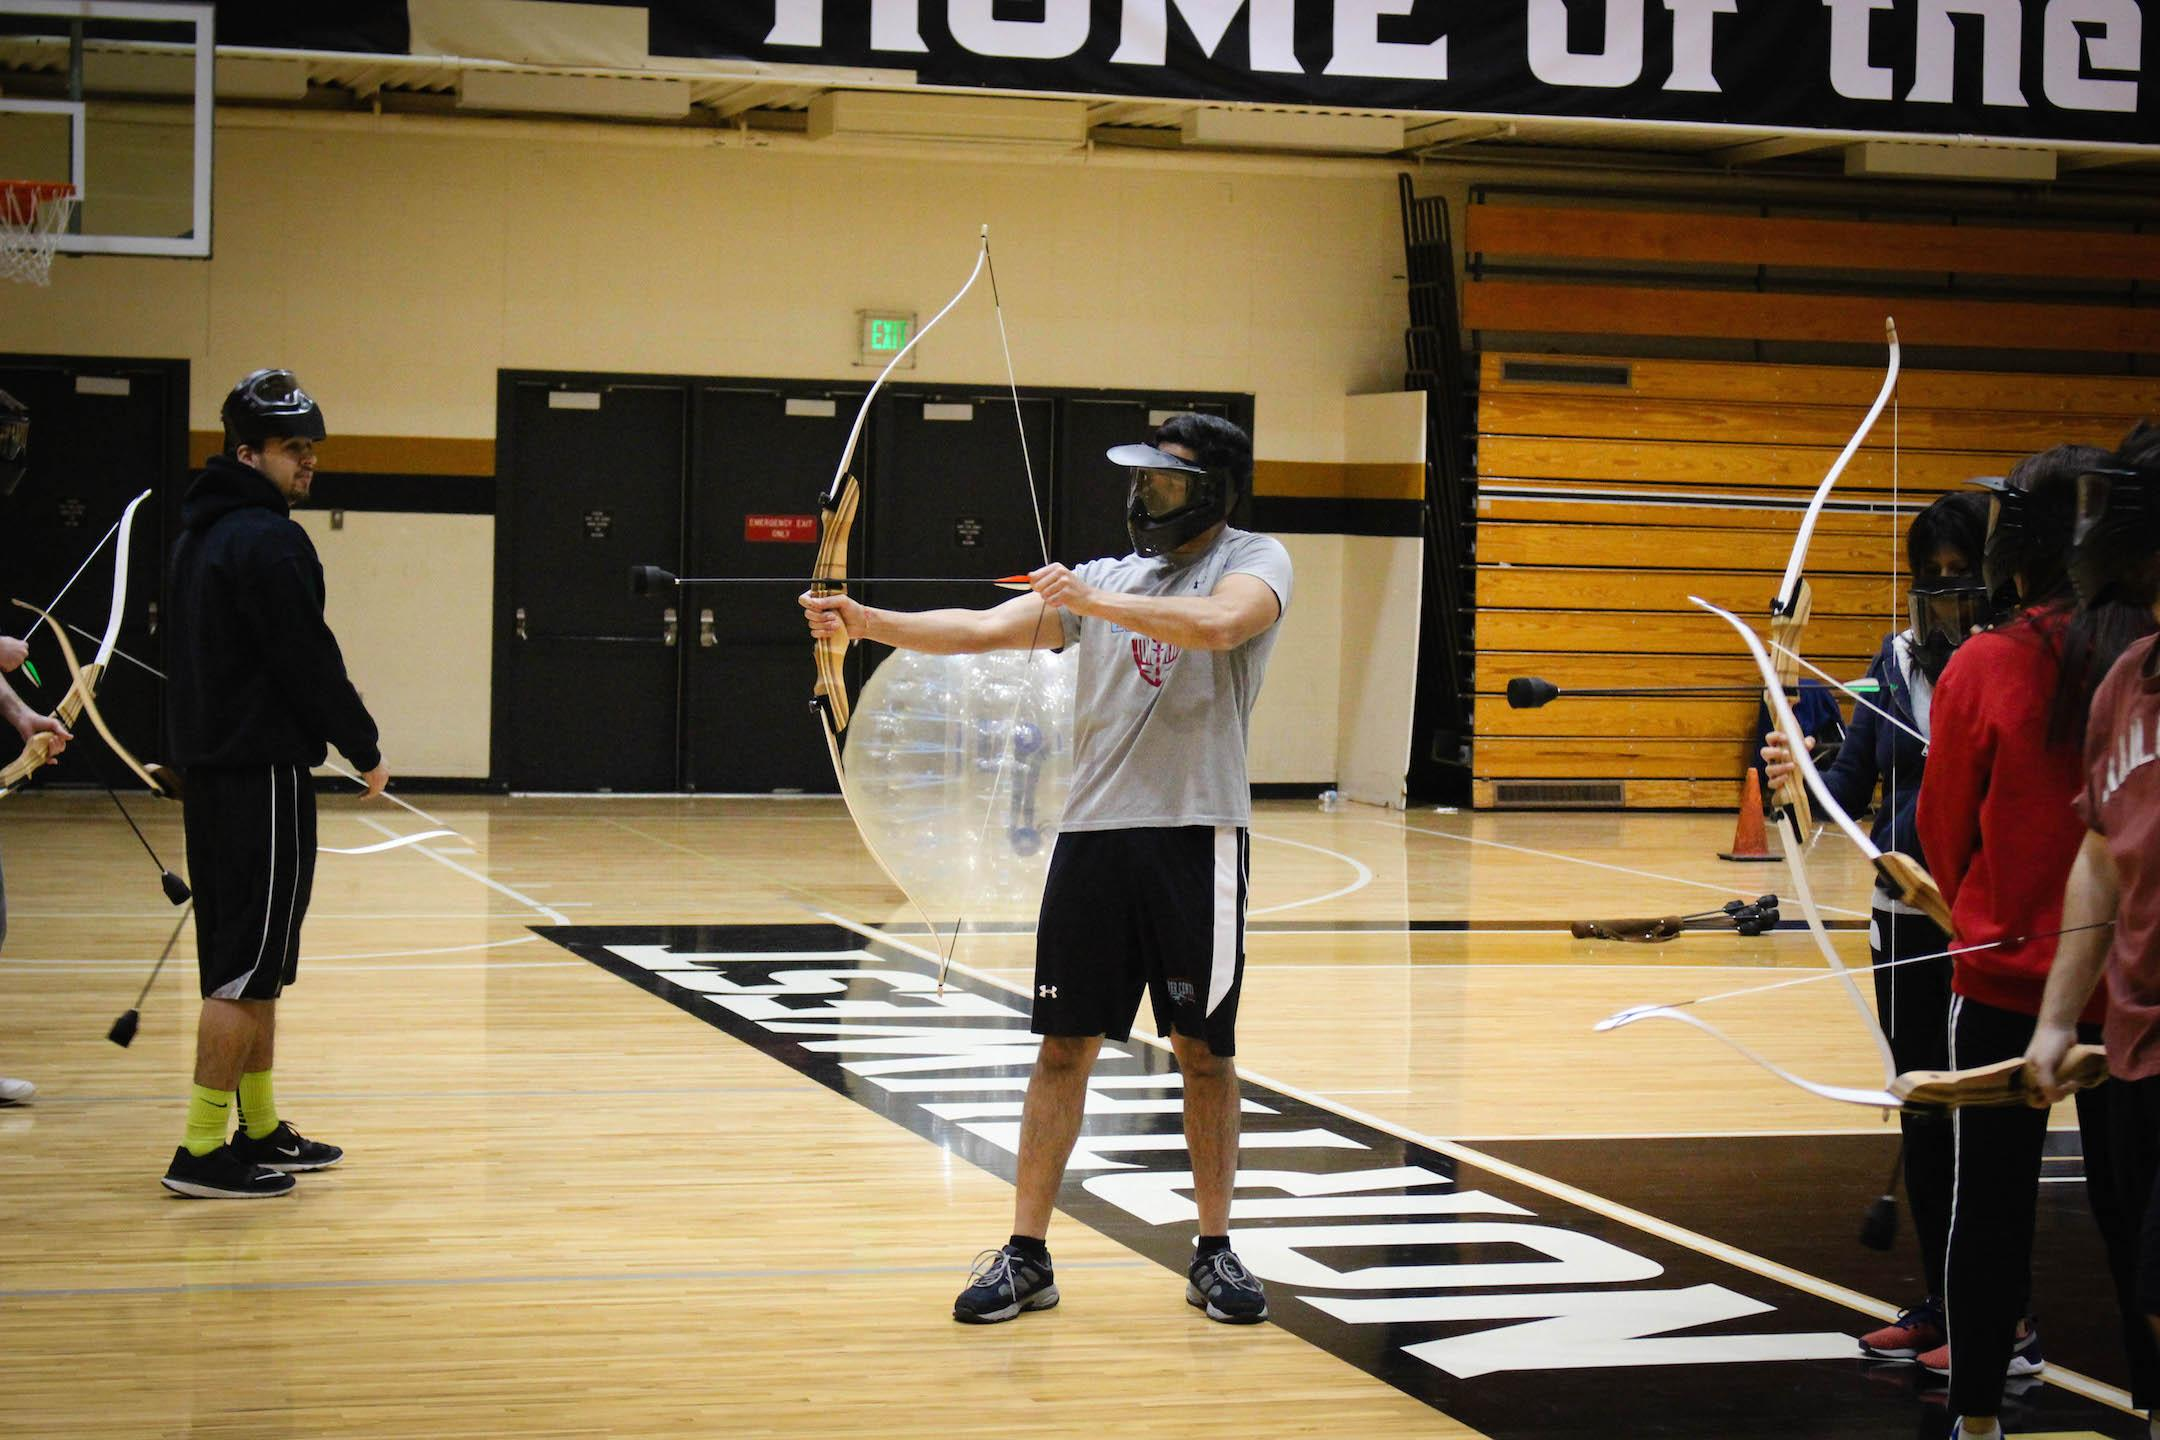 Syed Zeidi, sophomore electrical engineering major, draws his bow during combat archery.